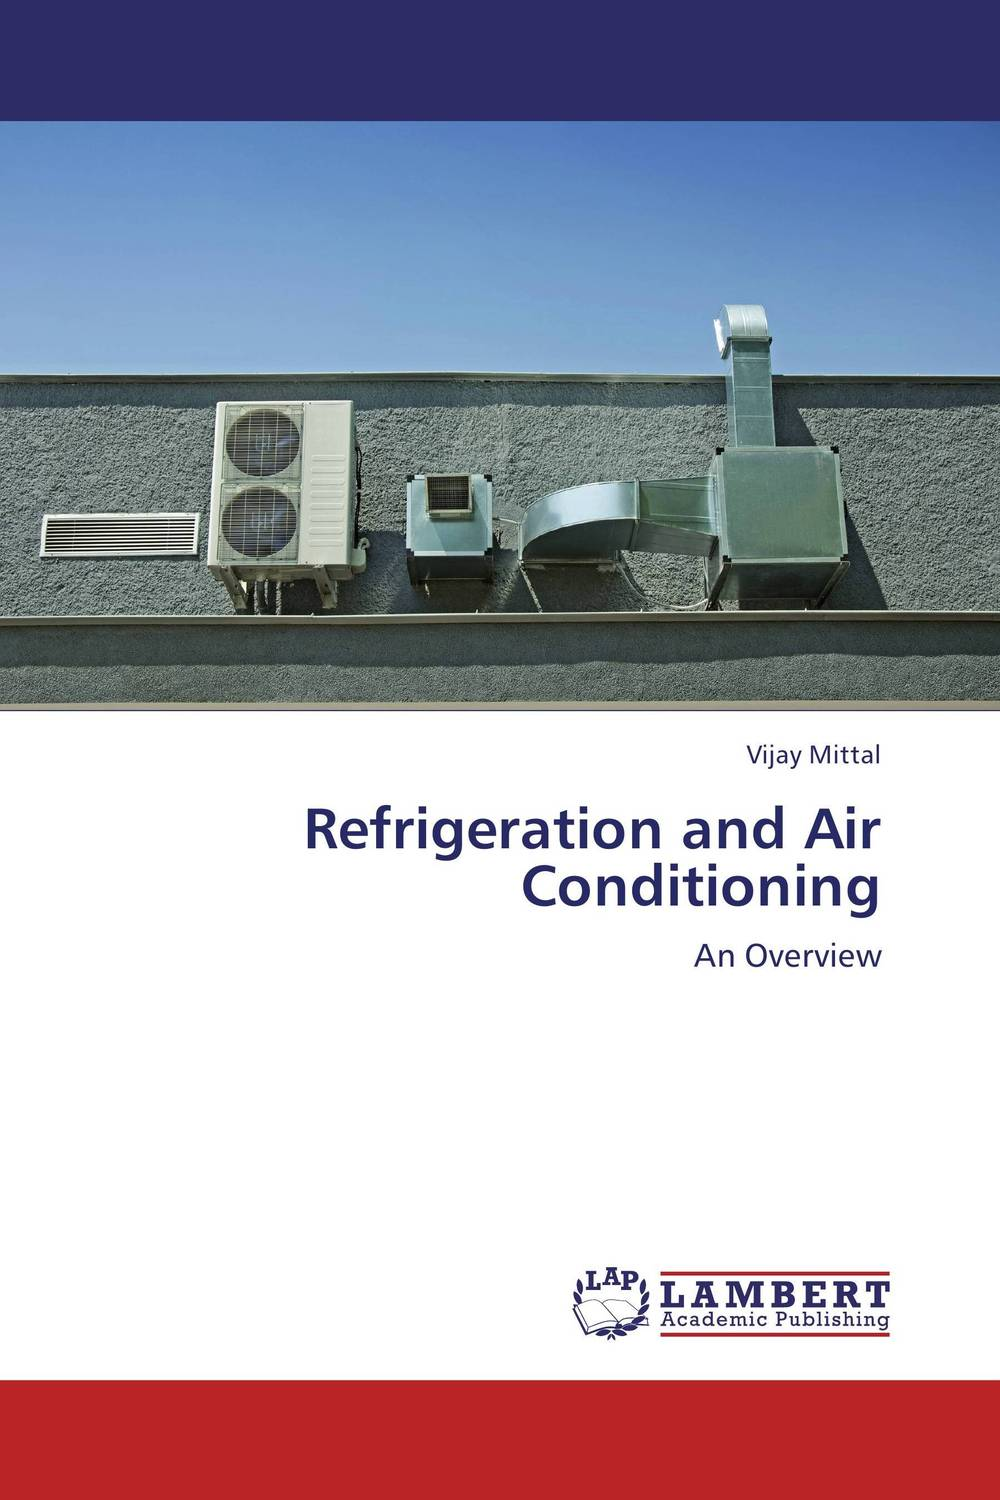 Refrigeration and Air Conditioning 7 8 global valve can be used in commercial refrigeration system civil and industrial air conditioning equipments